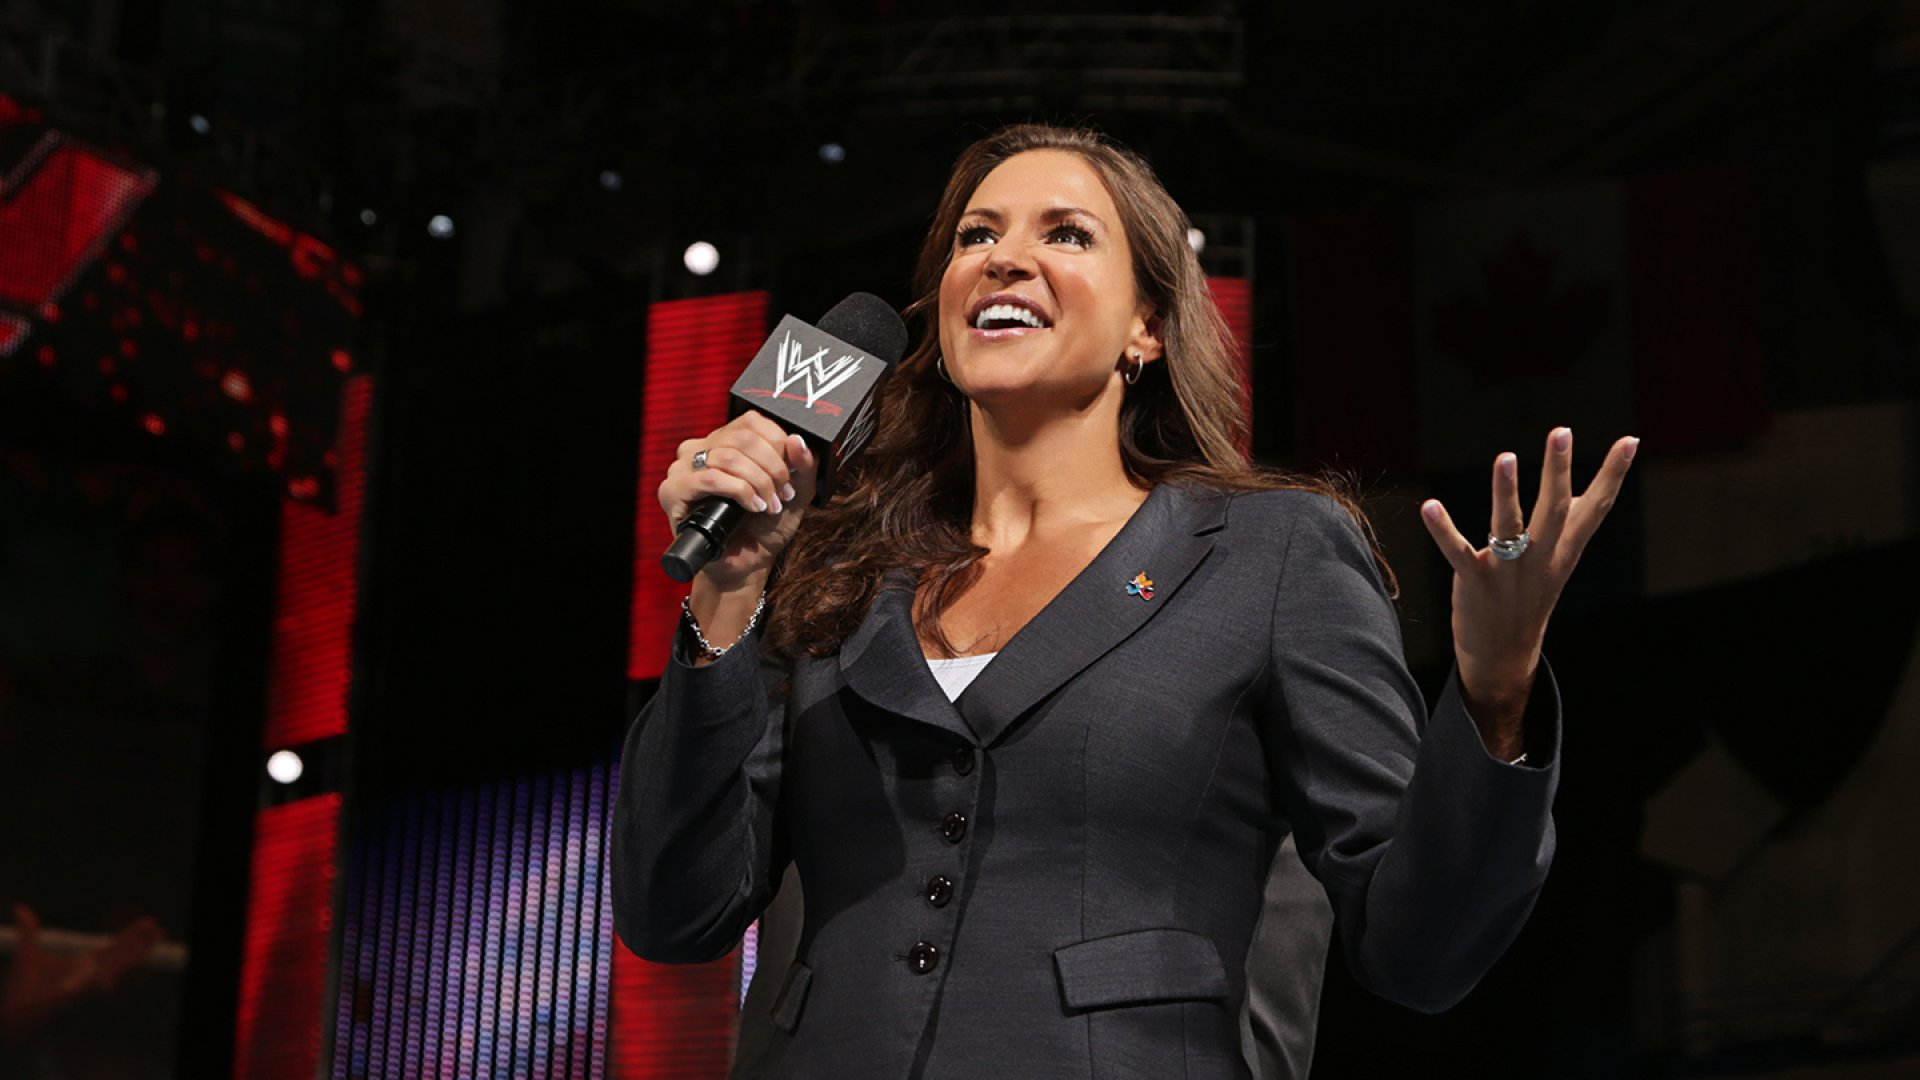 """Our fans are the secret to our success. They tell us what they like by cheering, they tell us what they don't like by booing, and worse, they tell us what they don't care about by being silent,"" Stephanie McMahon, WWE's Chief Brand Officer, tells Inc. 